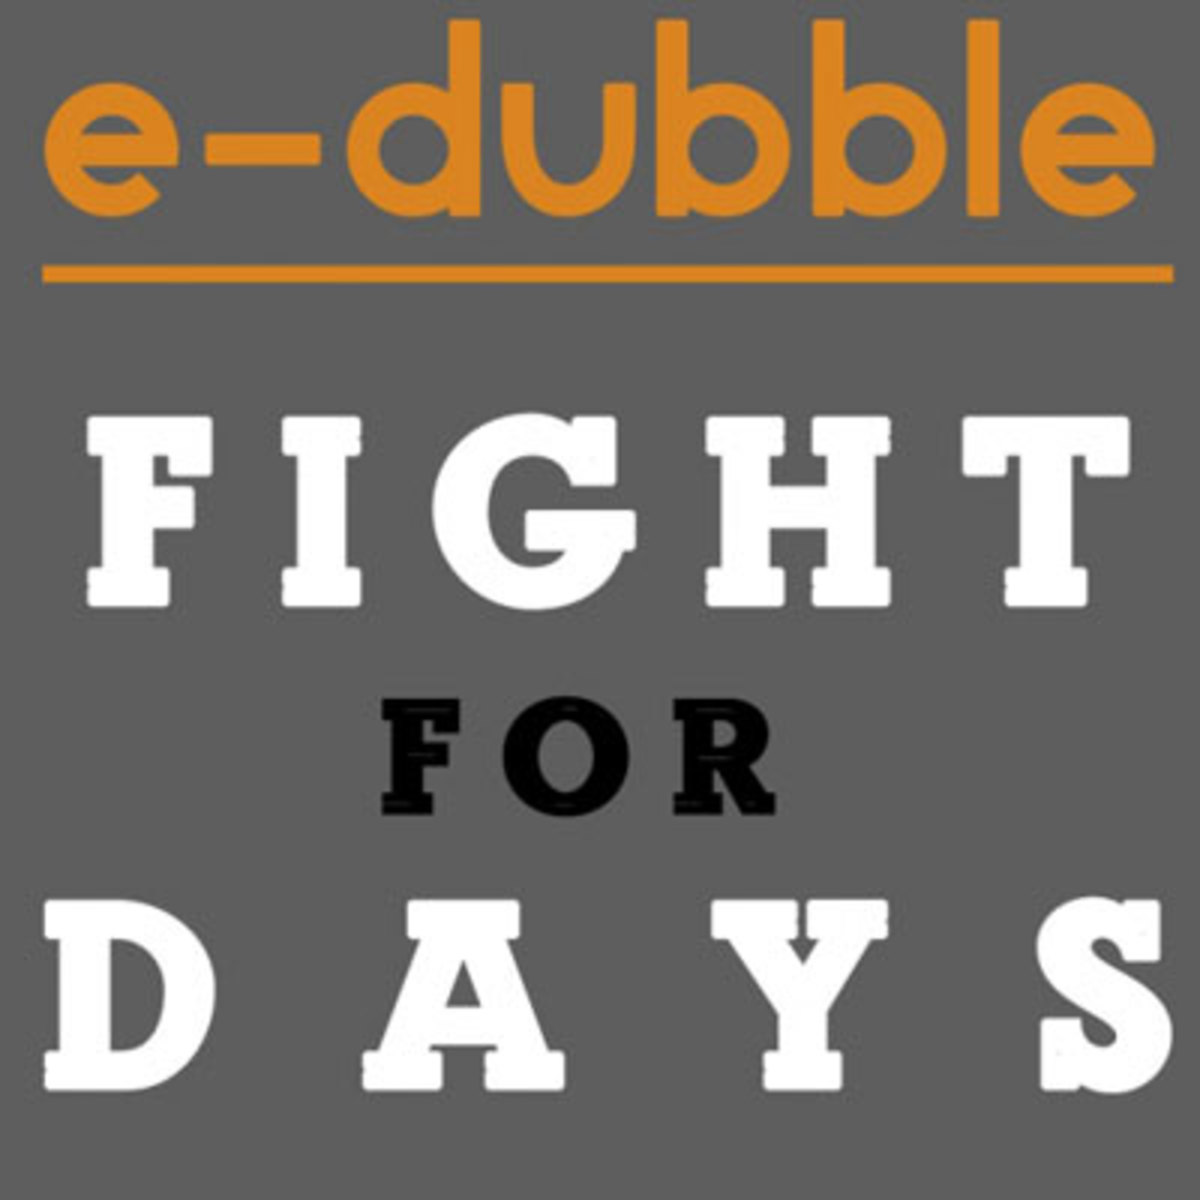 edubble-fightfordays.jpg